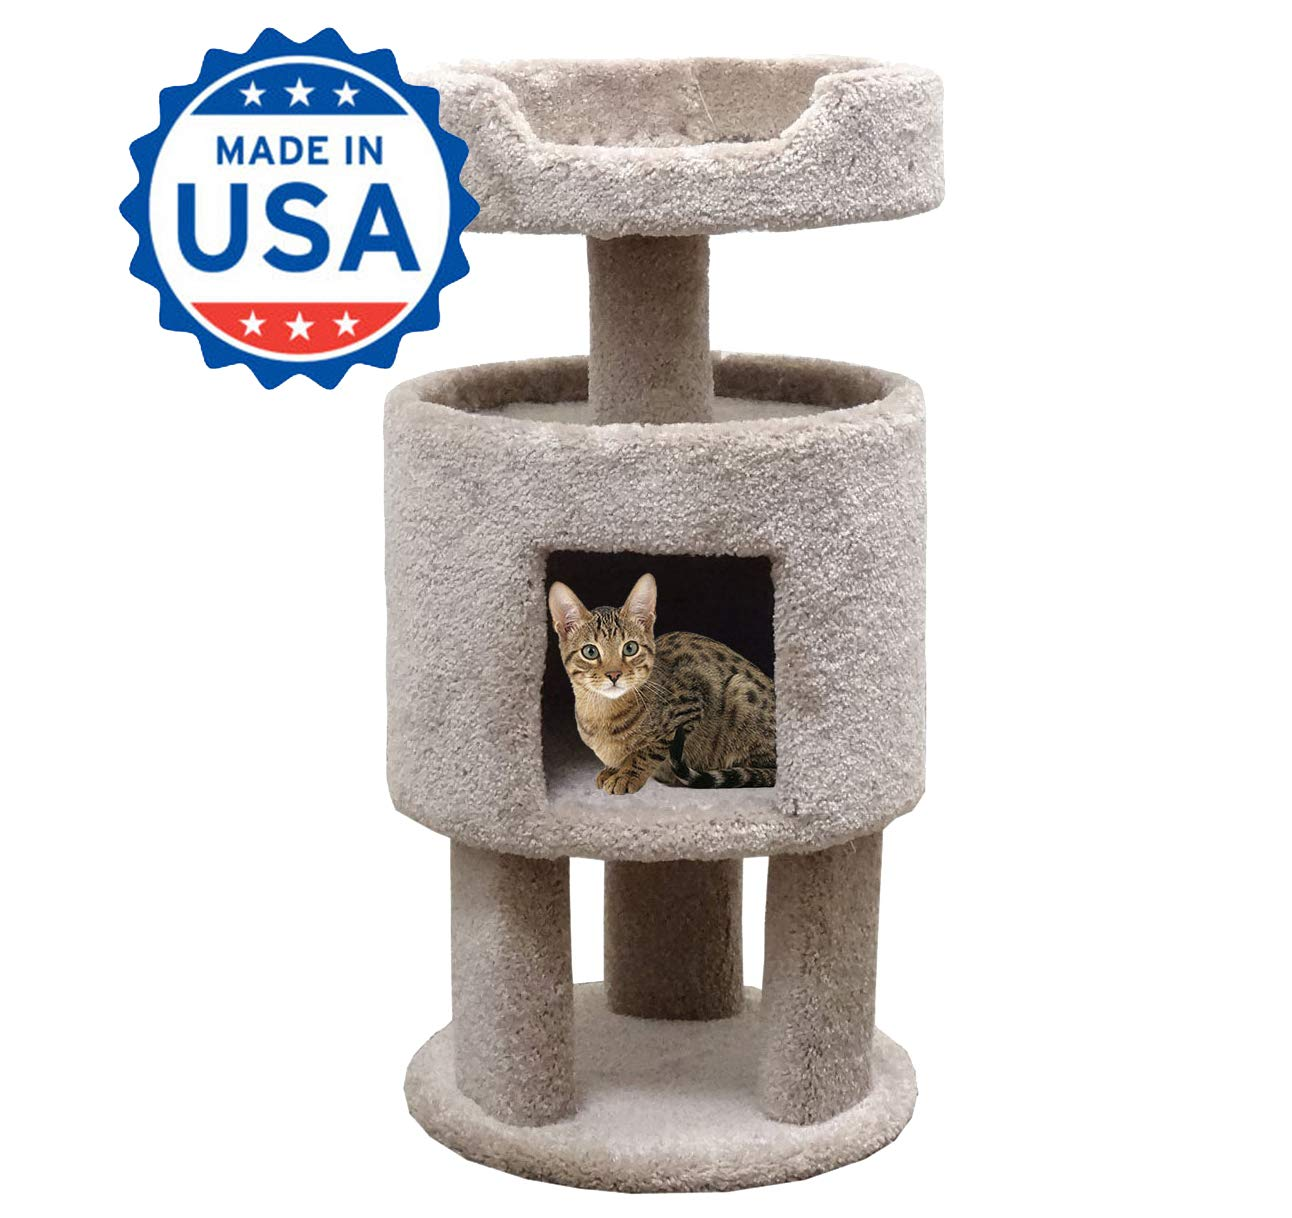 CozyCatFurniture Wood Carpeted Kitty Condo with Perch Cat Condo, Beige Carpet by CozyCatFurniture (Image #1)